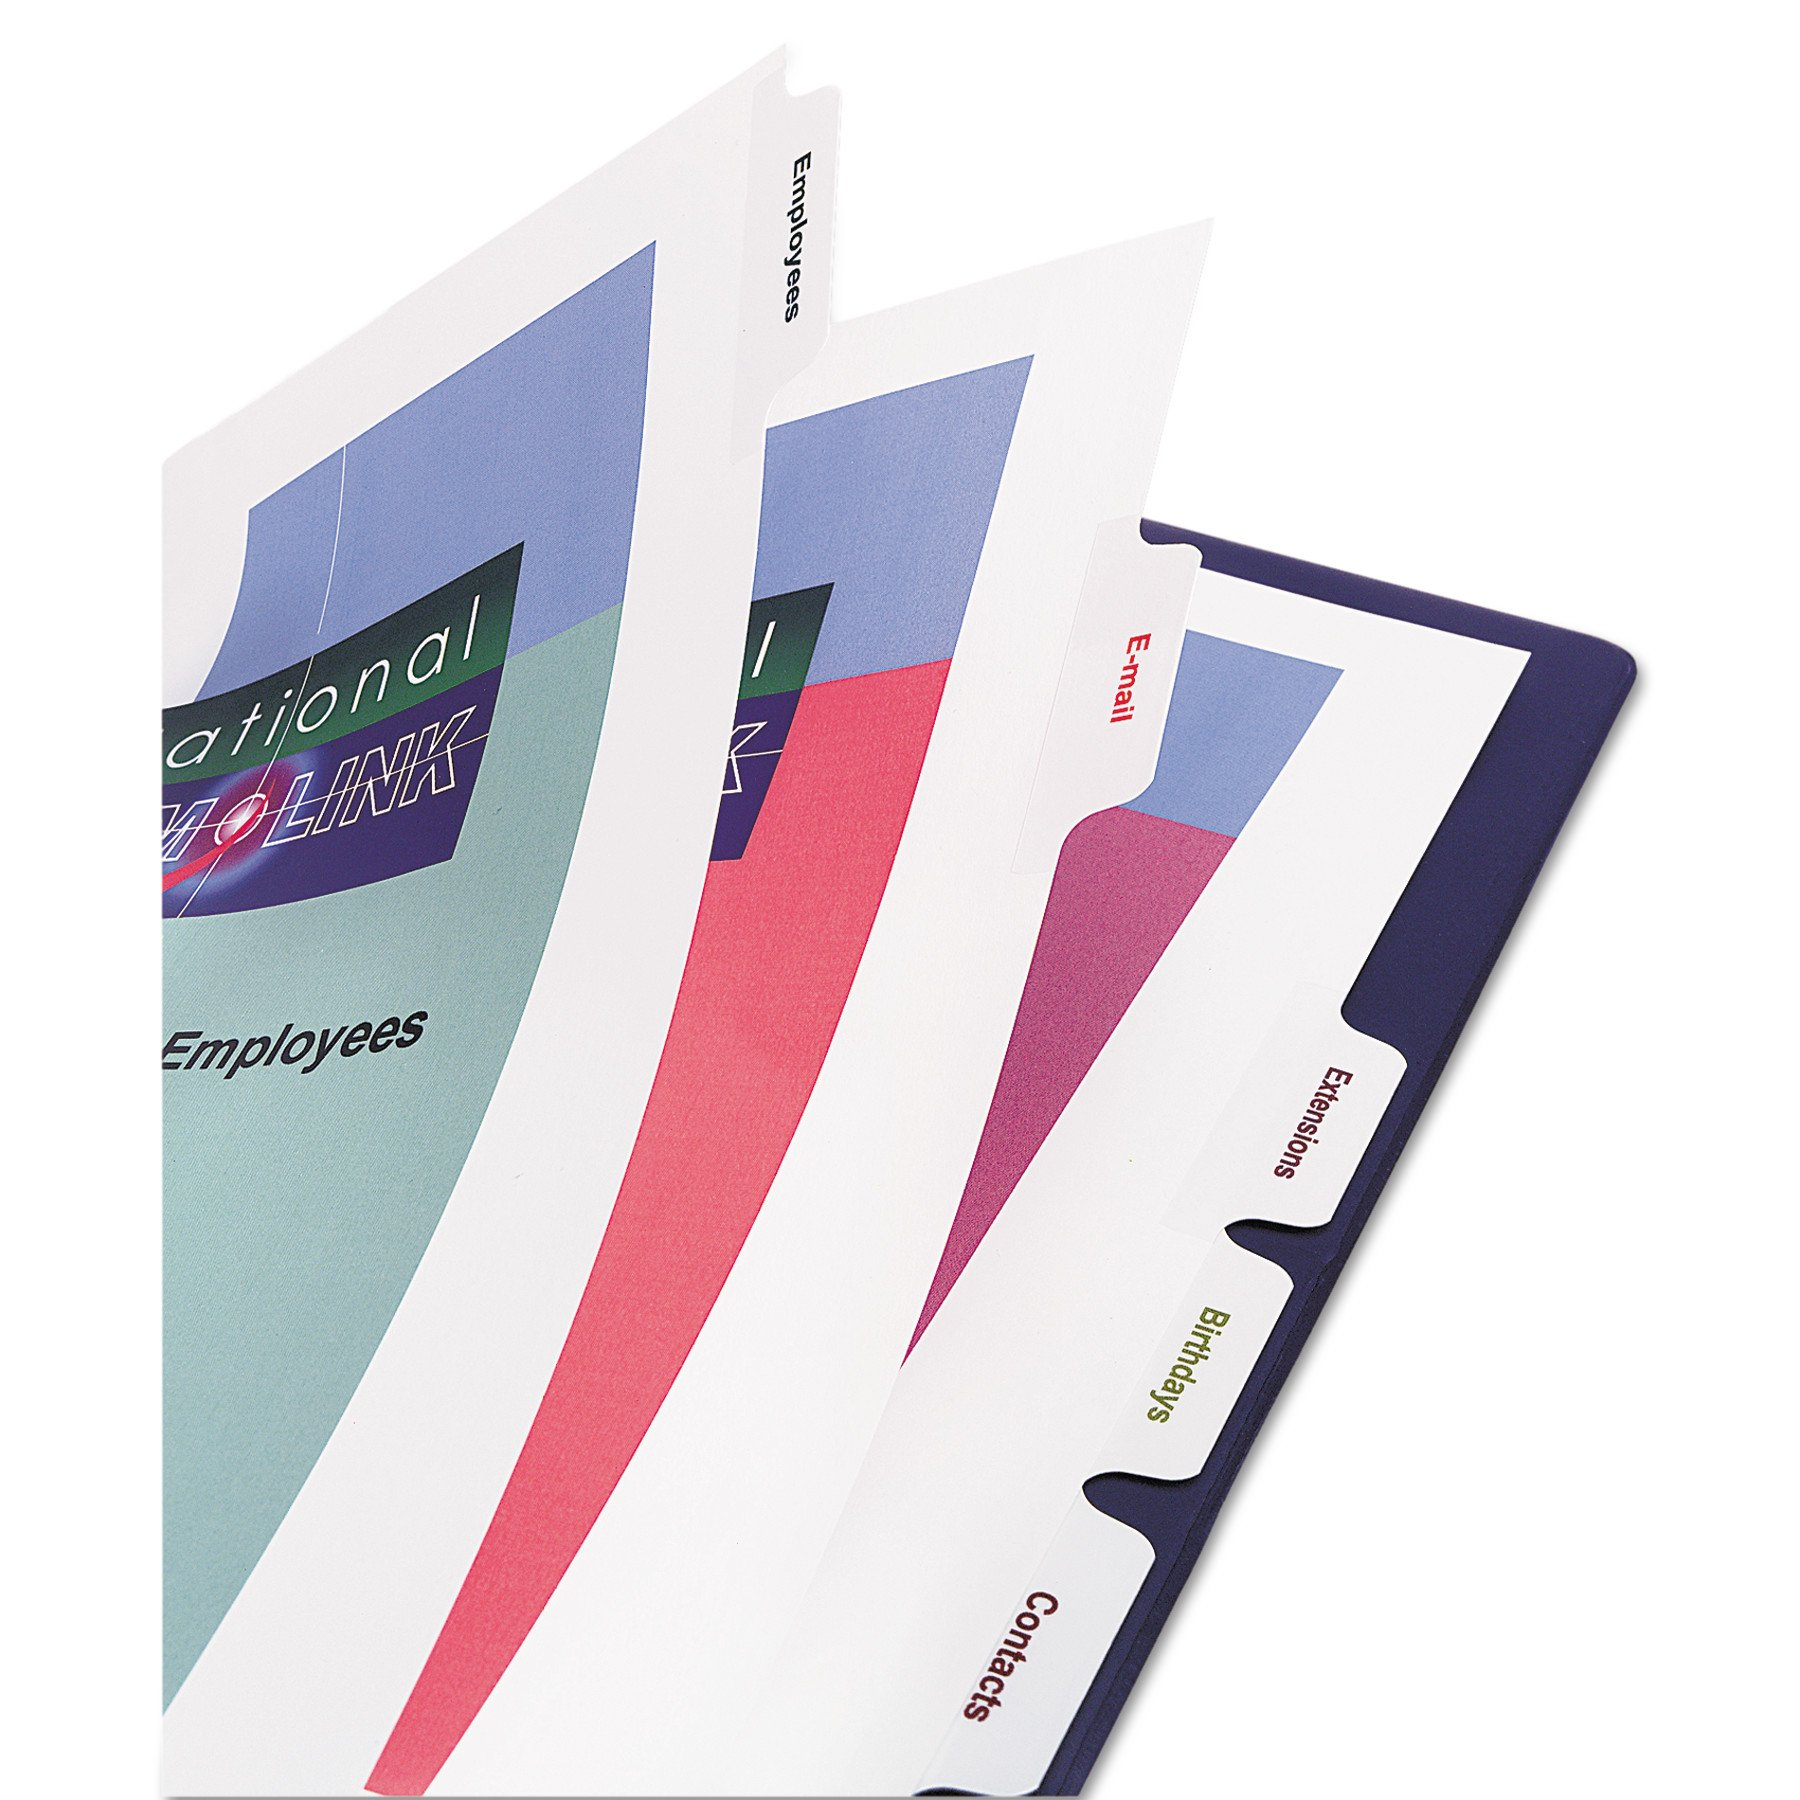 Avery Print-On Dividers, White, 8 Tabs, 5 Sets (11552) by Avery (Image #3)